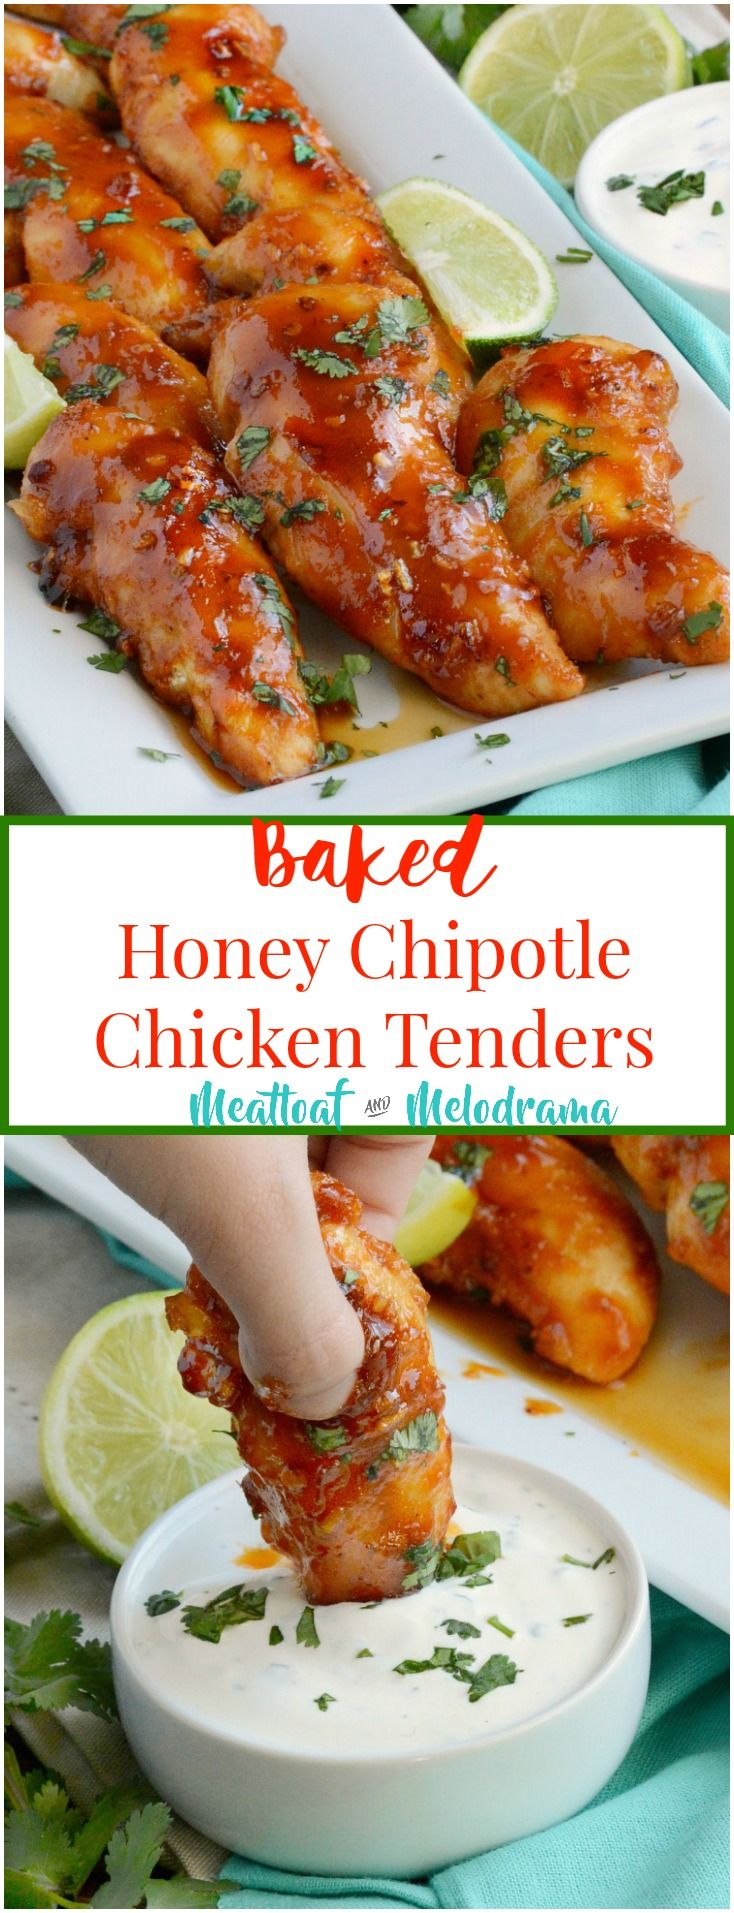 Baked Honey Chipotle Chicken Tenders - Healthier than fried, these spicy gluten-free appetizers take 20 minutes to make and are perfect for game day, parties or a quick and easy lunch or dinner! from Meatloaf and Melodrama